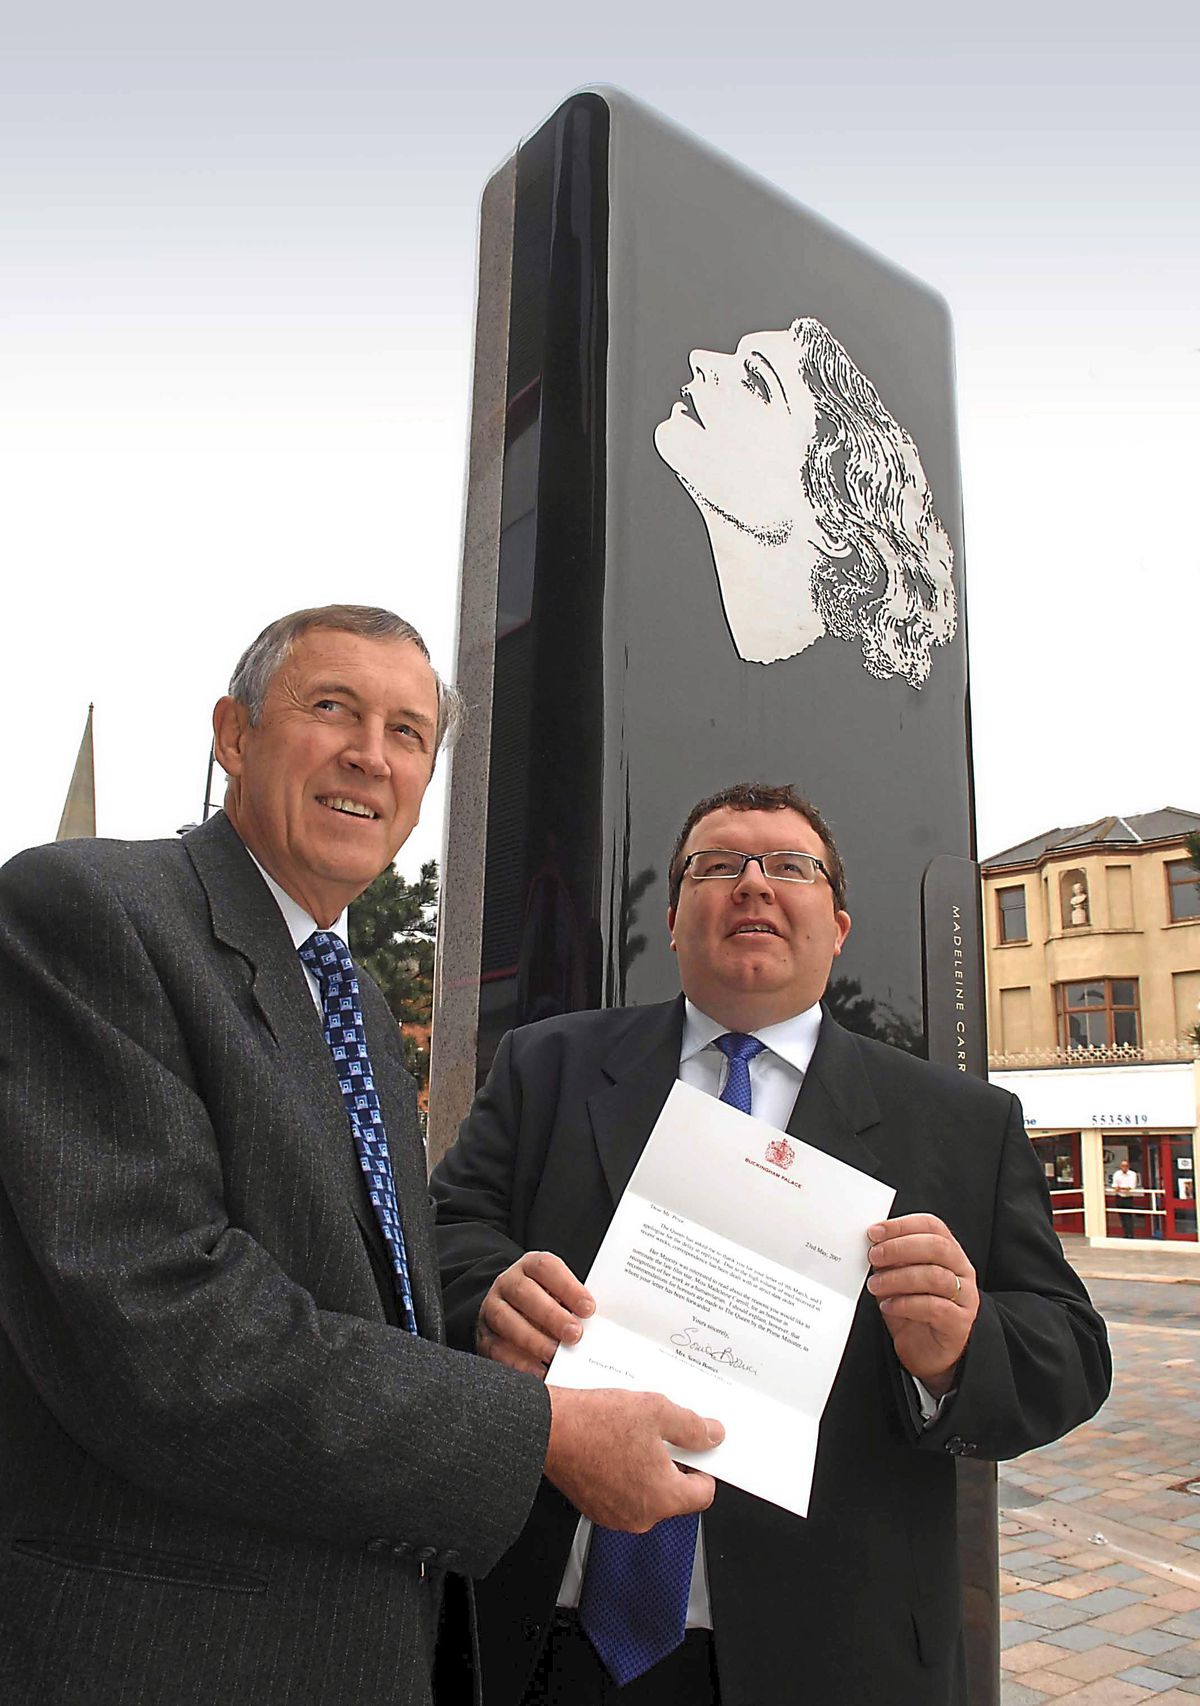 Historian Terry Price and former MP Tom Watson at the monument to Madeleine Carroll in West Bromwich town centre